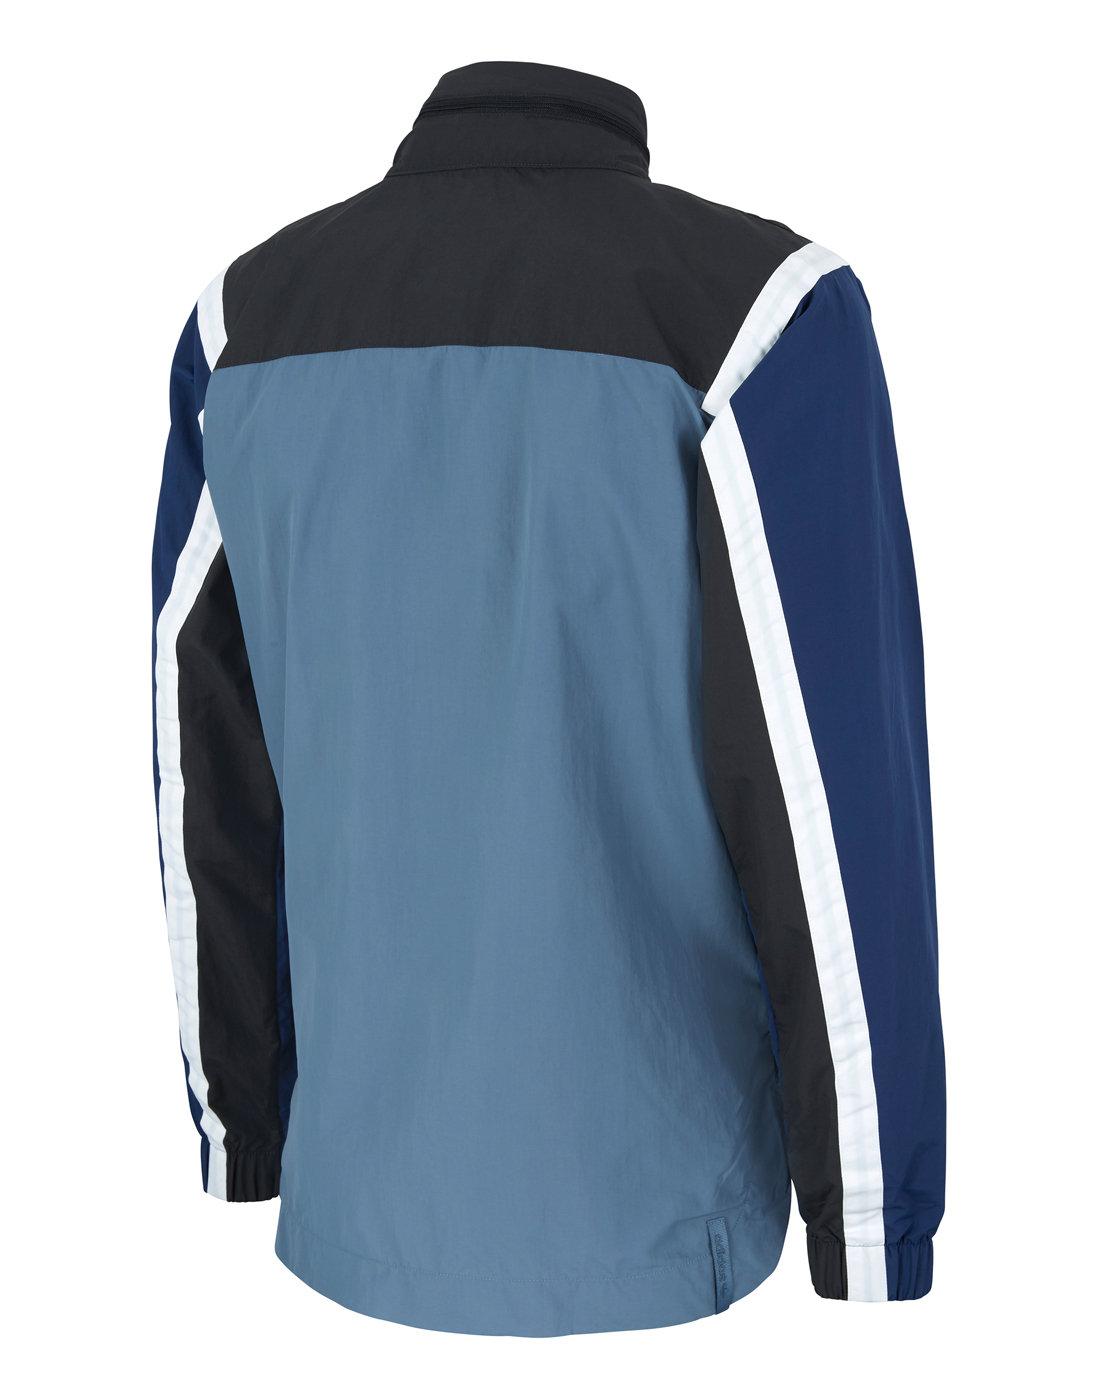 d2f597733 adidas Originals Mens Nova Wind Jacket | Life Style Sports